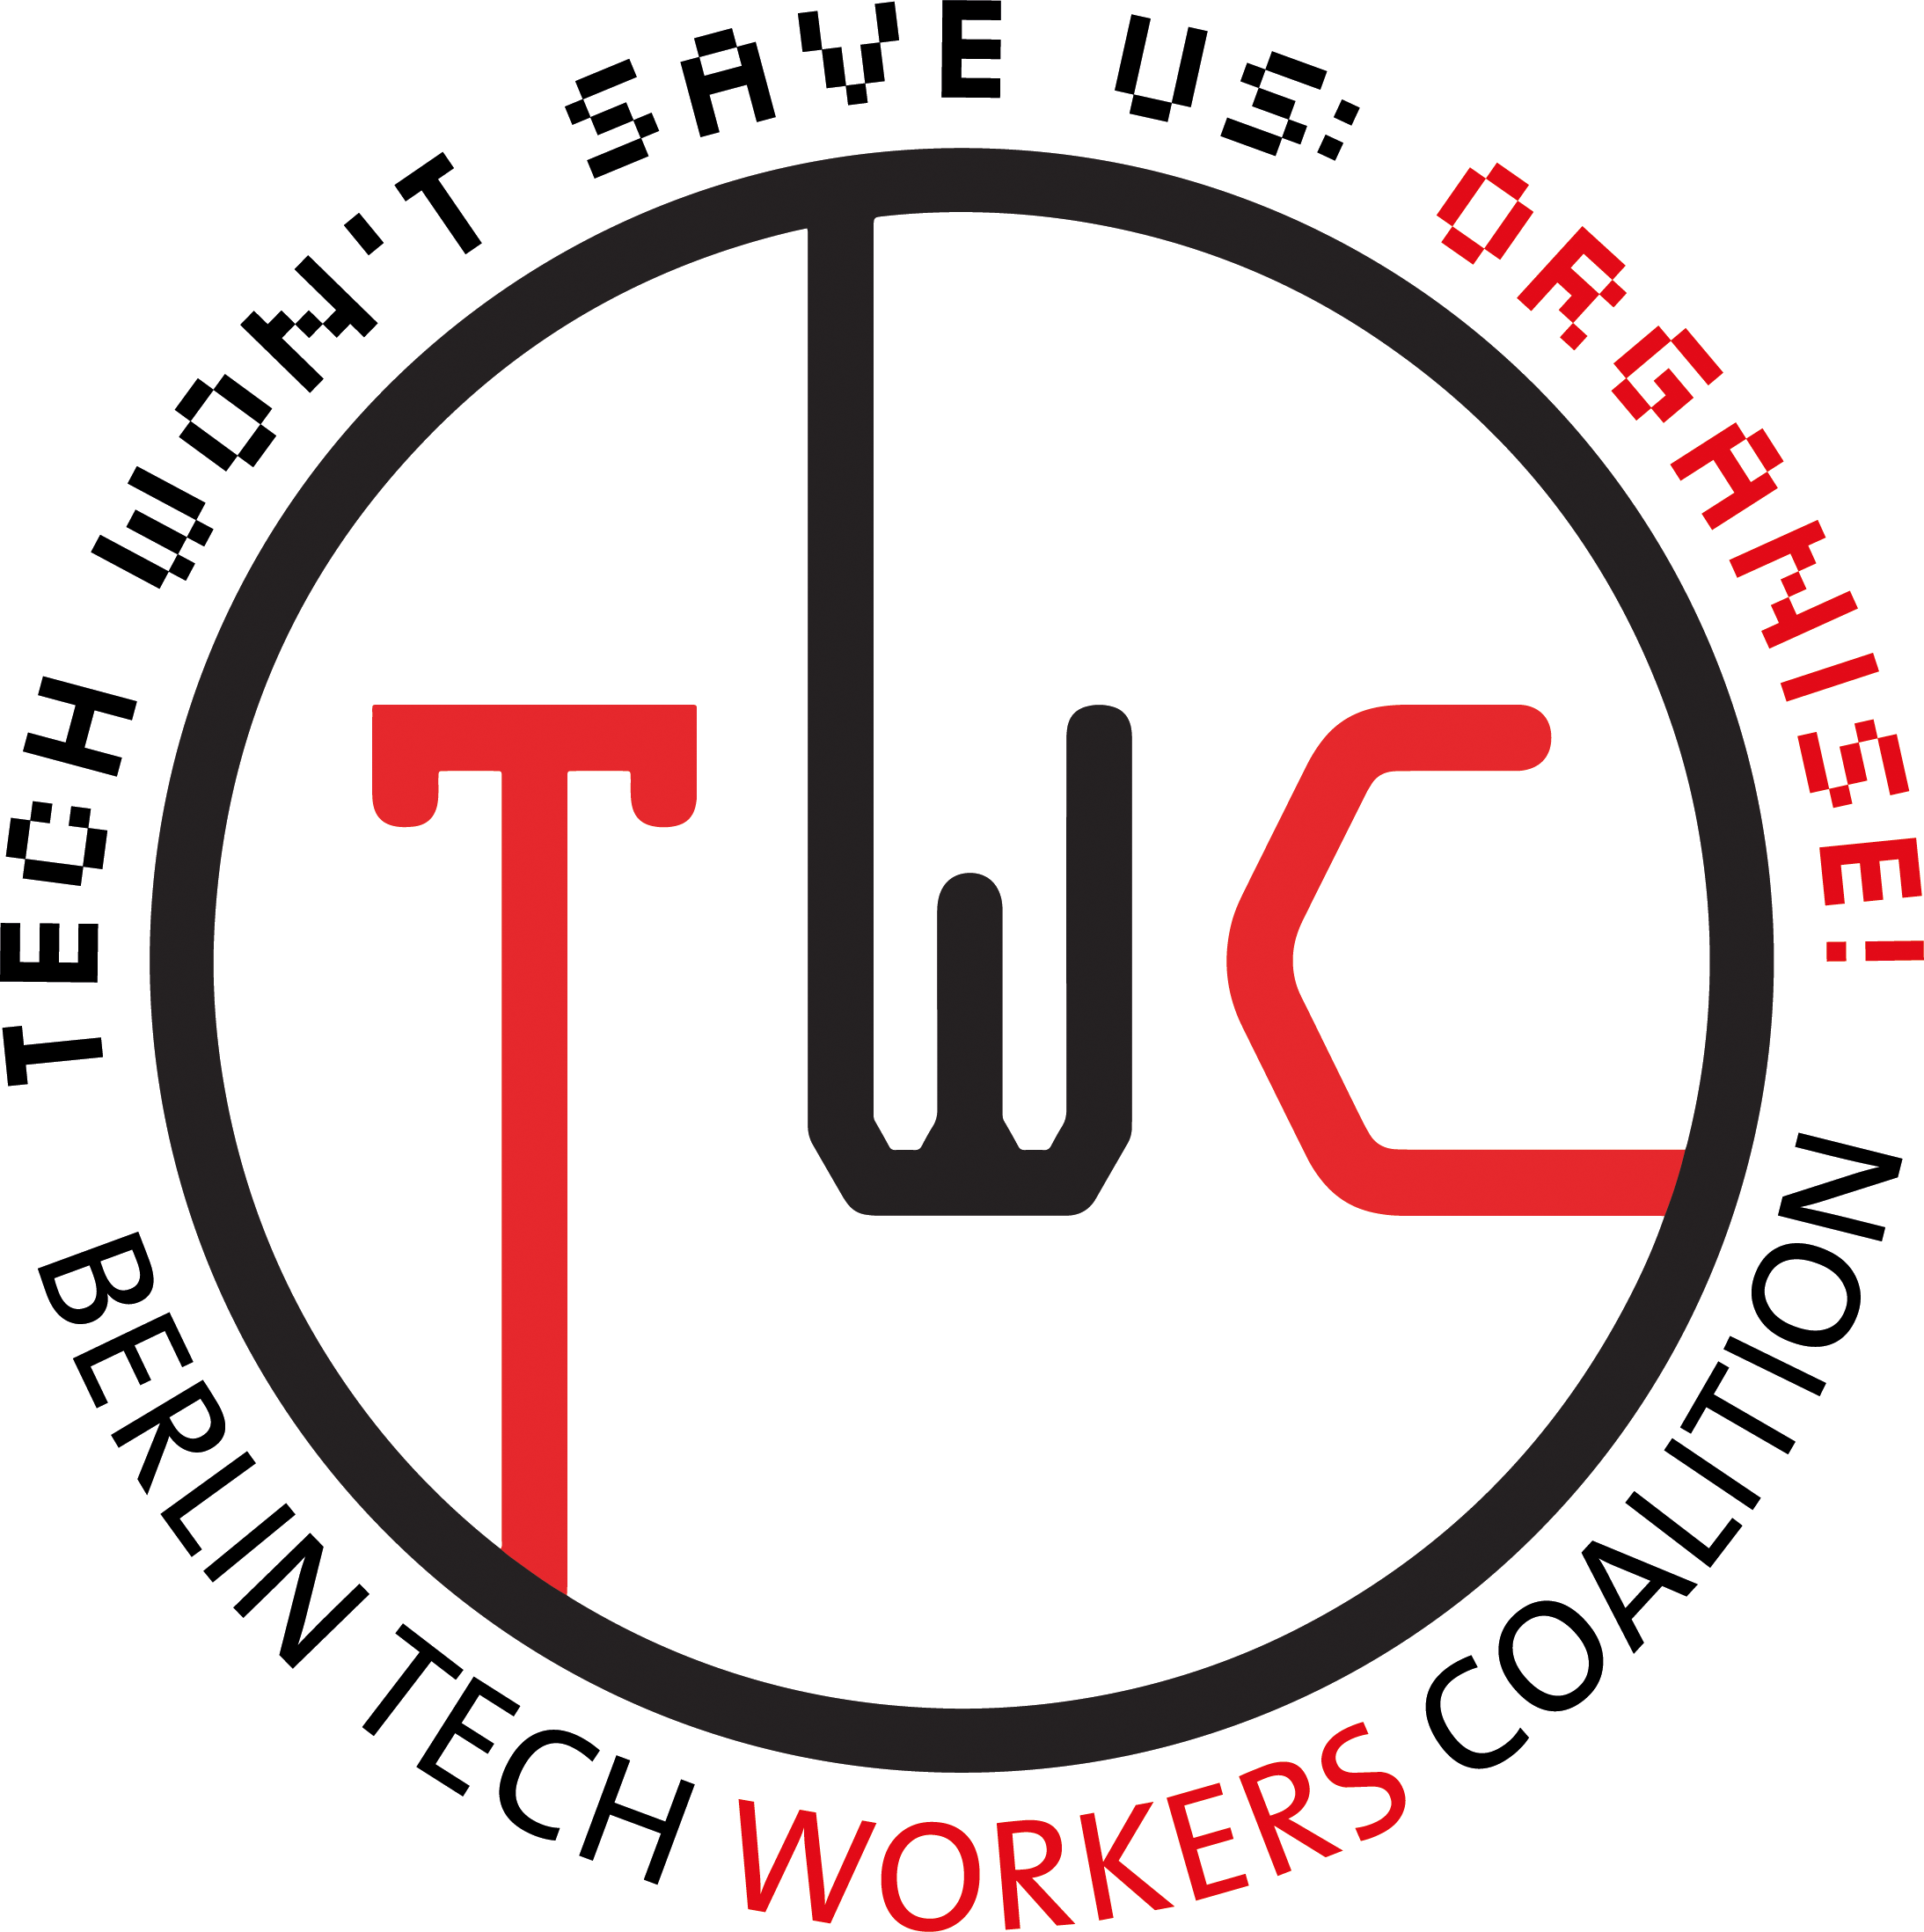 Berlin Tech Workers Coalition